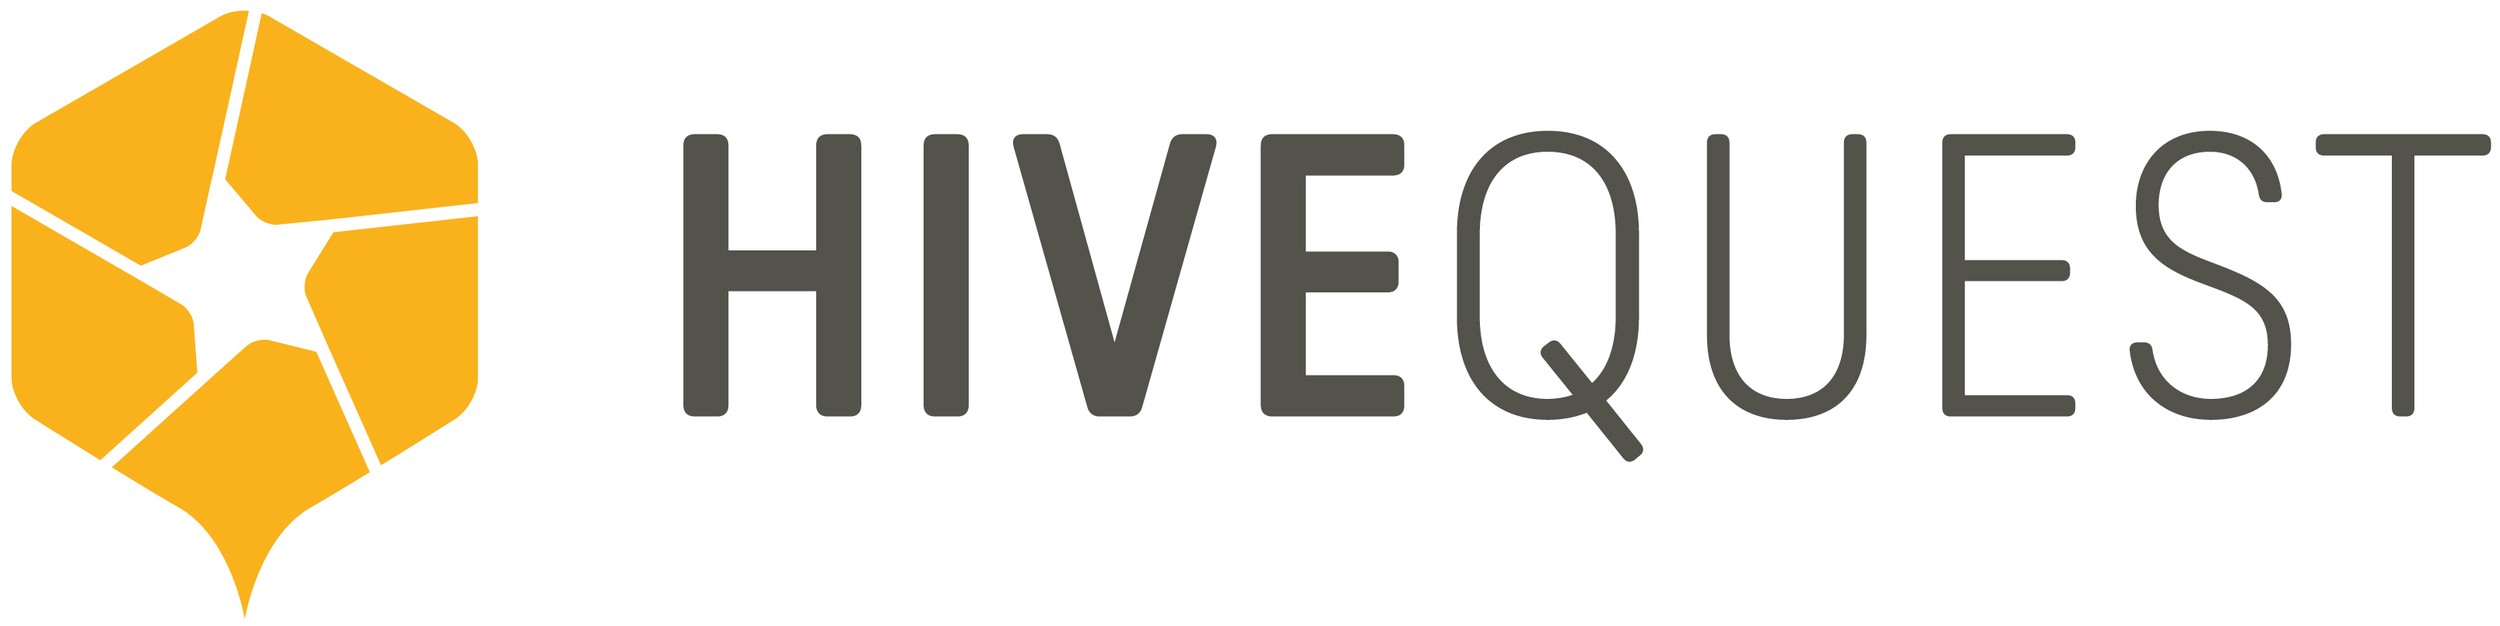 hivequest_logo_white.png